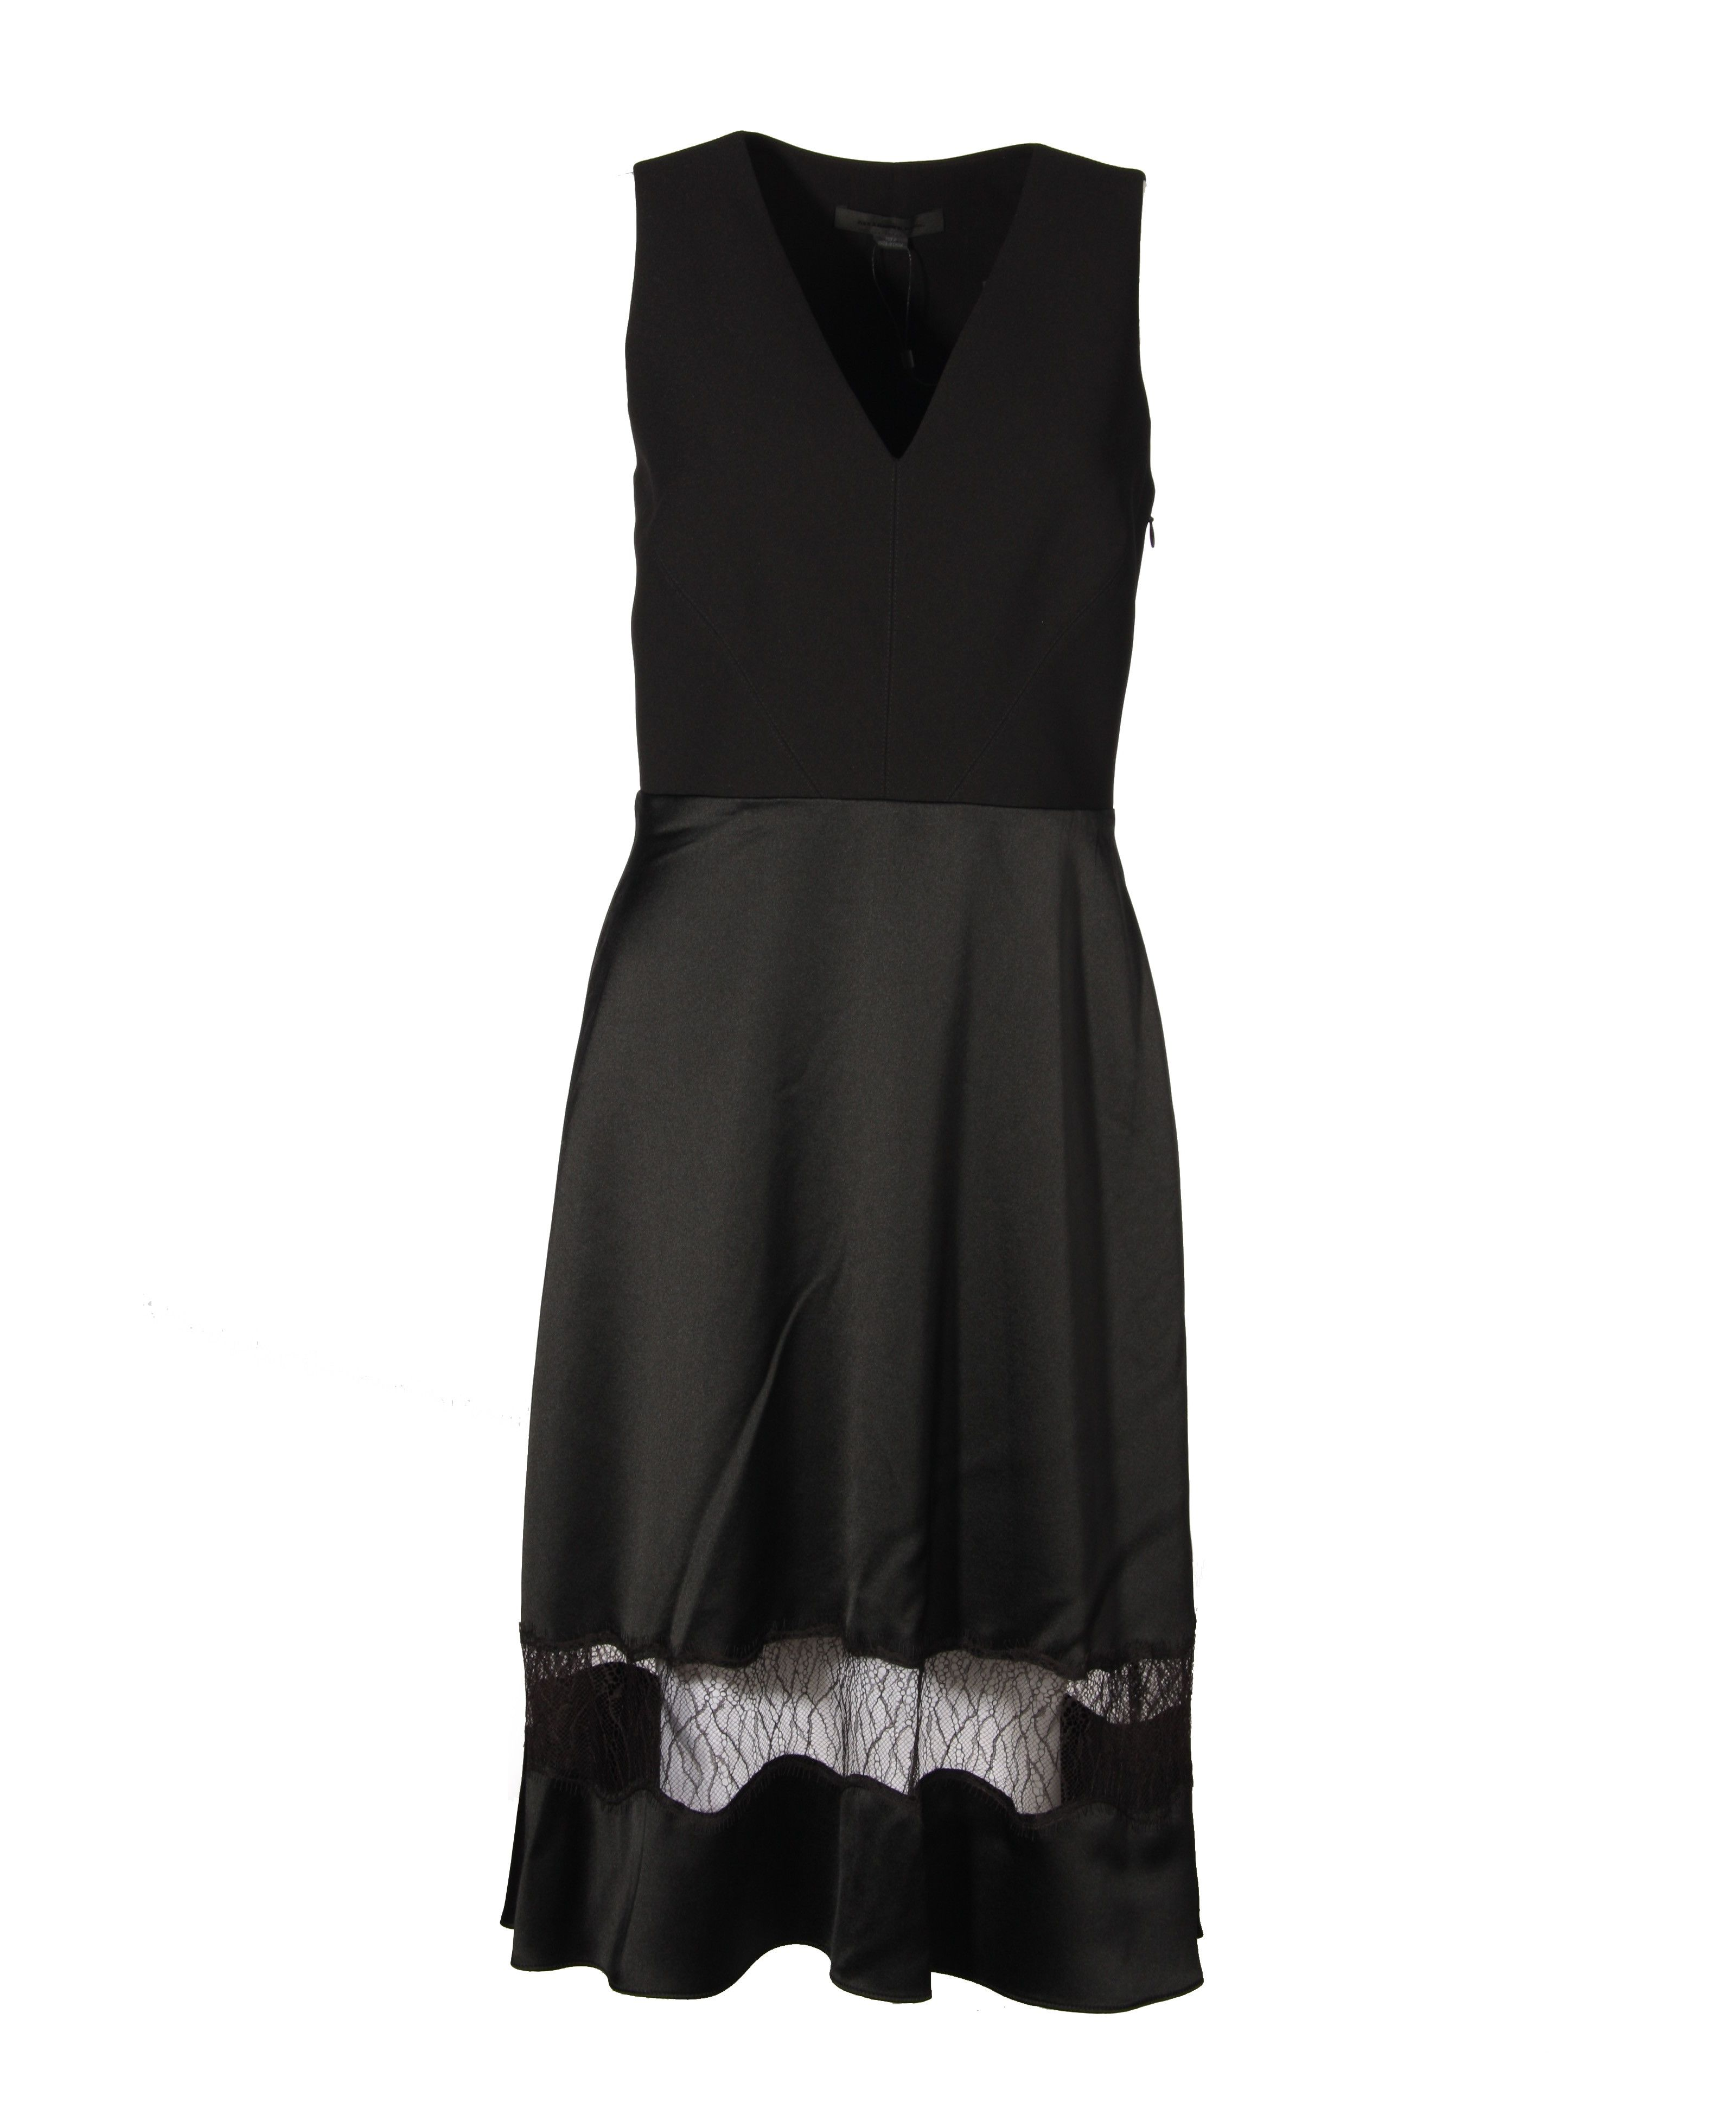 Alexander Wang Black Silk Dress With Lace